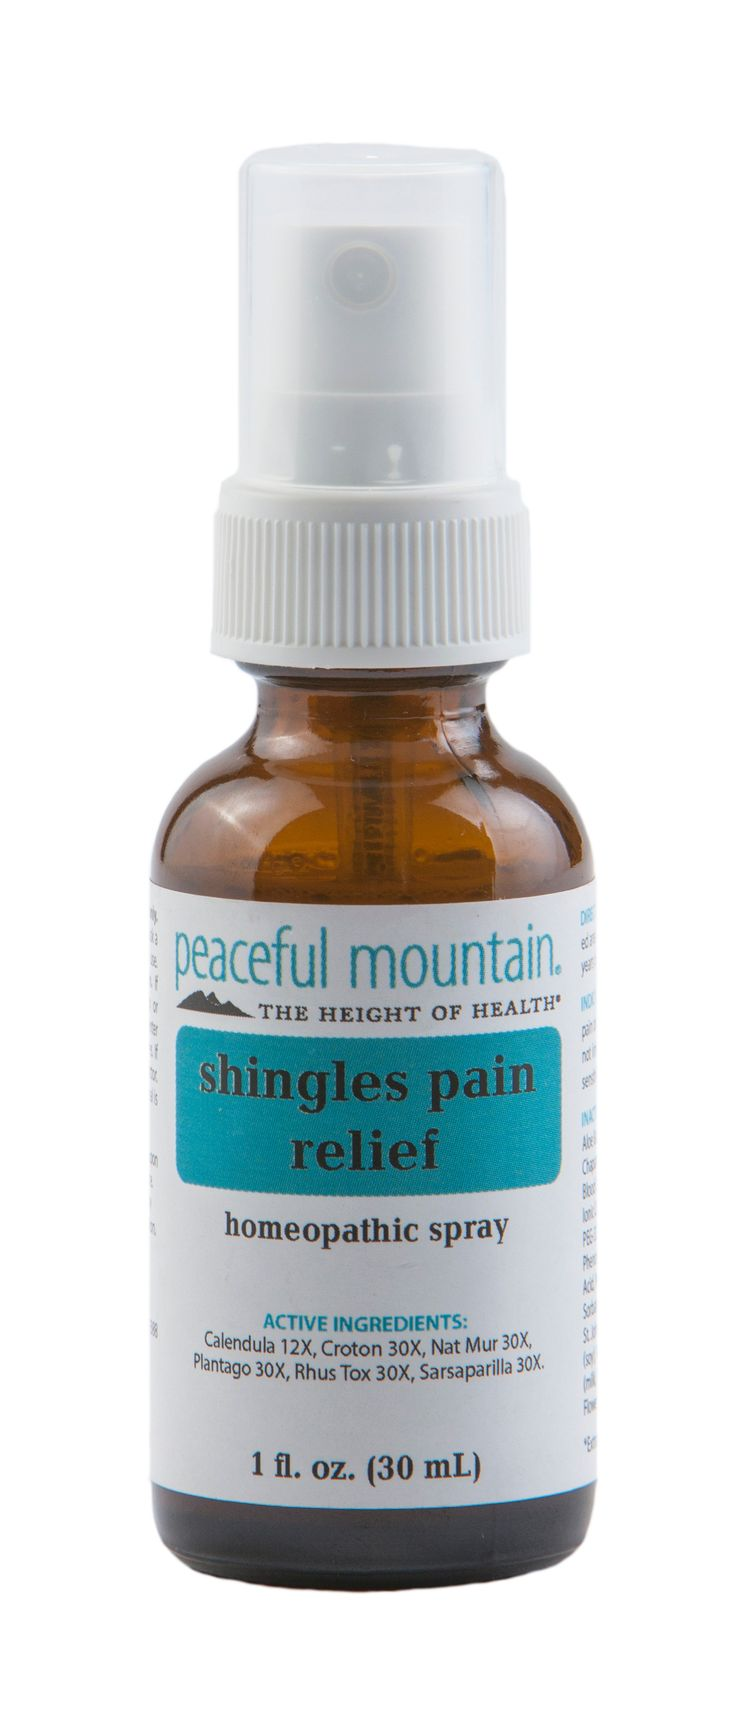 Now your search for Shingles relief is over! Shingles Pain Relief by Peaceful Mountain is a revolutionary combination of homeopathic components such as Plantago Major 30X, known for its healing properties, and Rhus Tox 30X, known to provide relief from discomfort. A natural milk derivative in the formula acts as an enabler for these specific homeopathics to quickly penetrate to the inflammation site, which may enhance rapid pain relief.